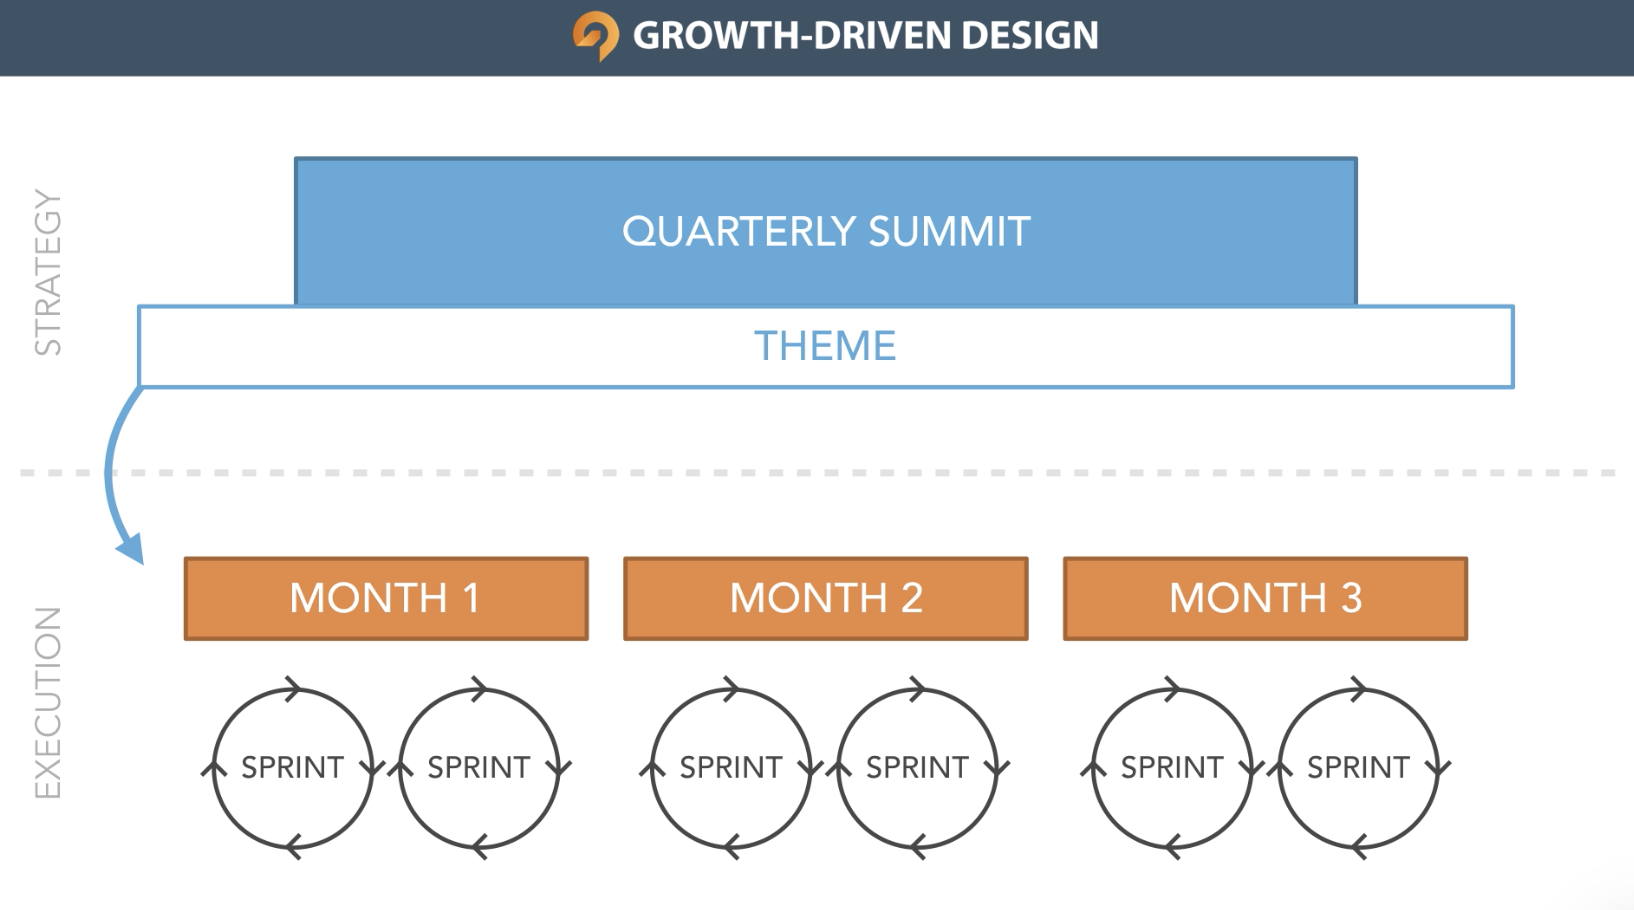 growth-driven-design-continuous-improvement-stages-sprints